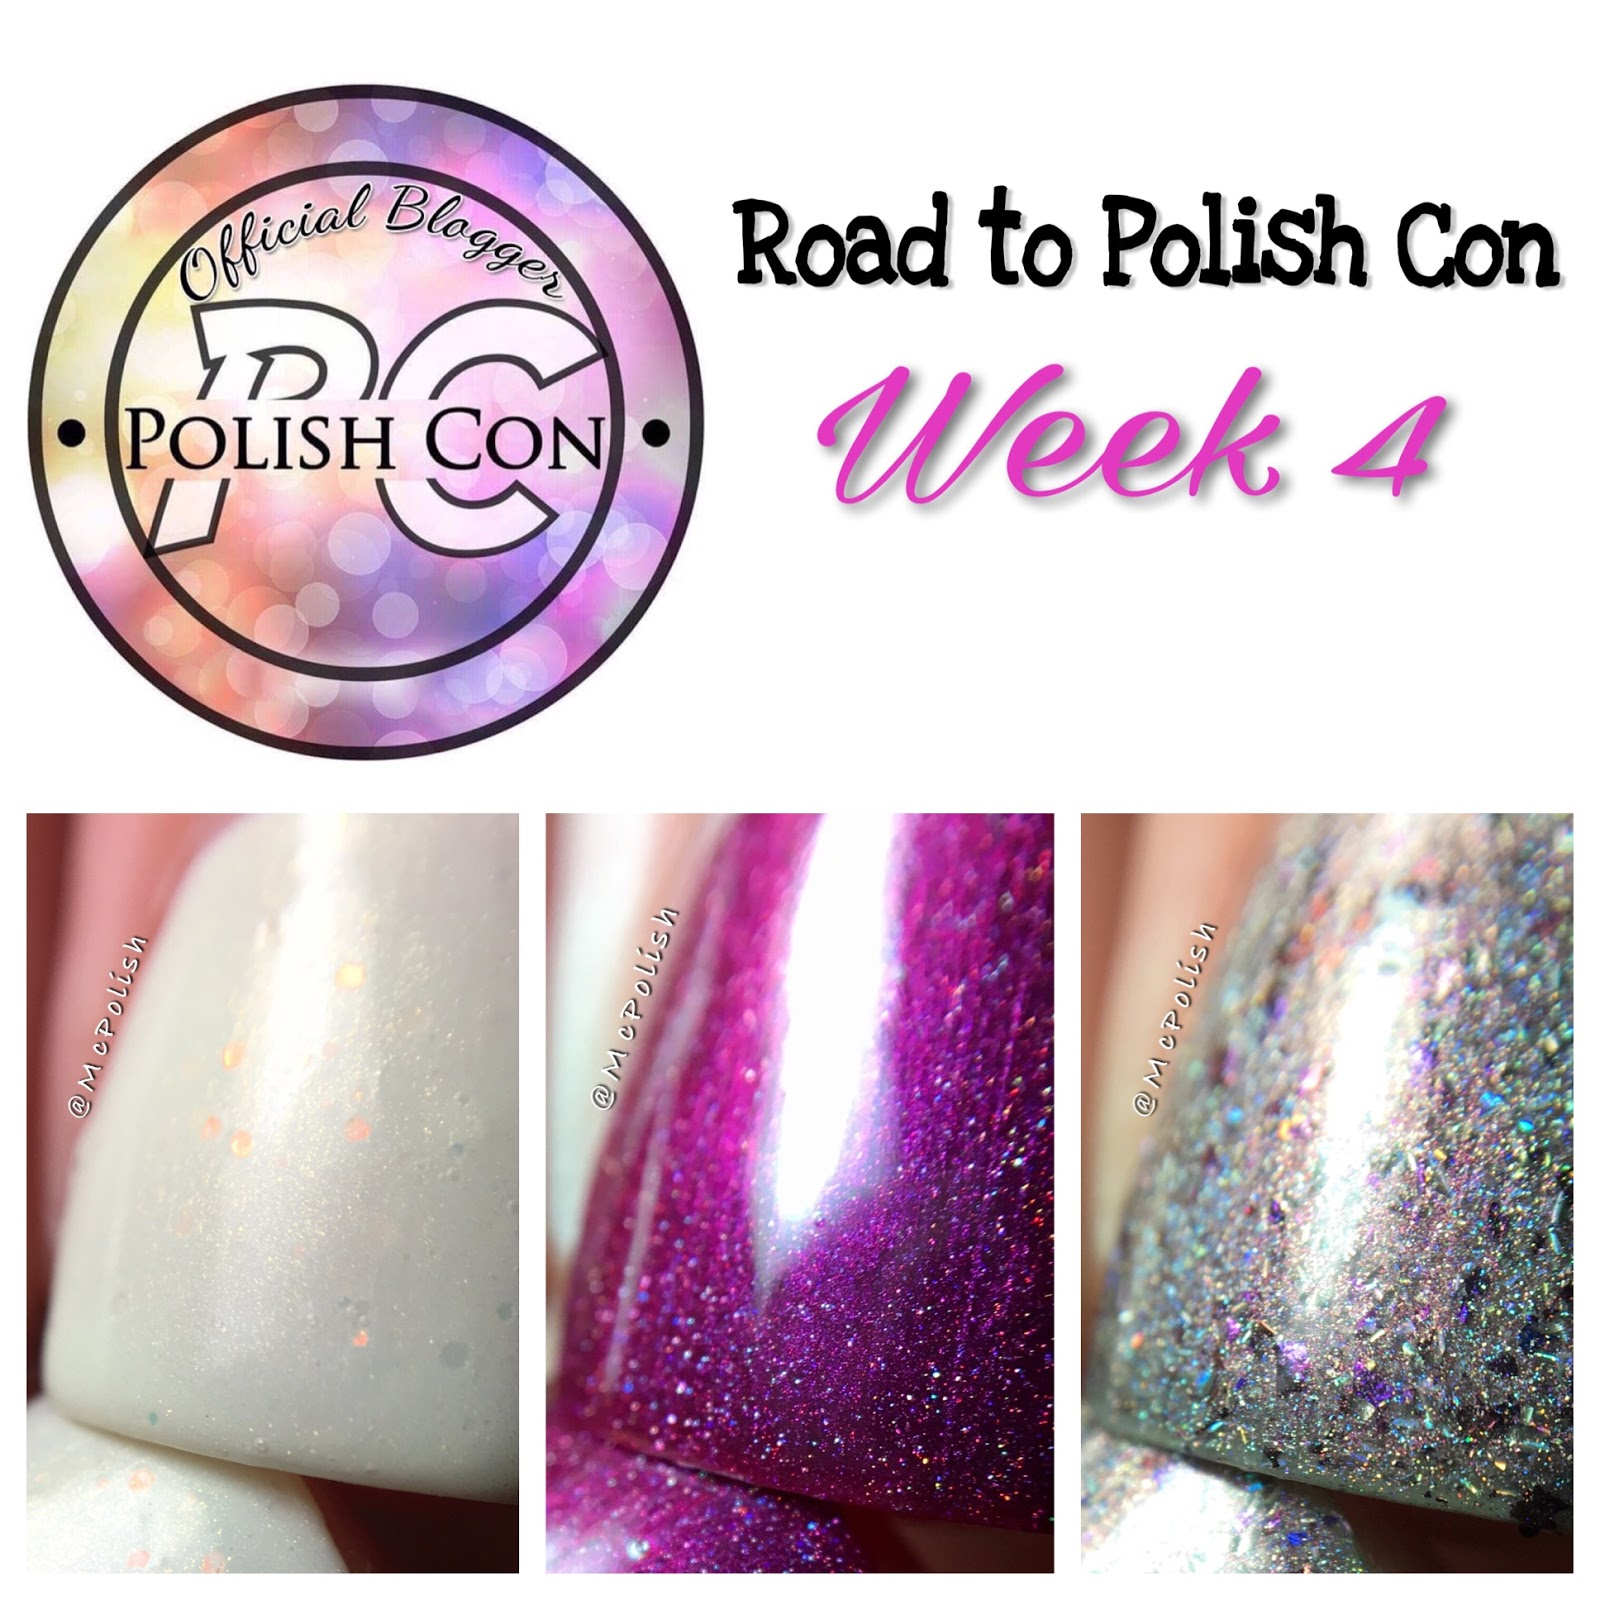 Road to Polish Con - Week 4 - McPolish